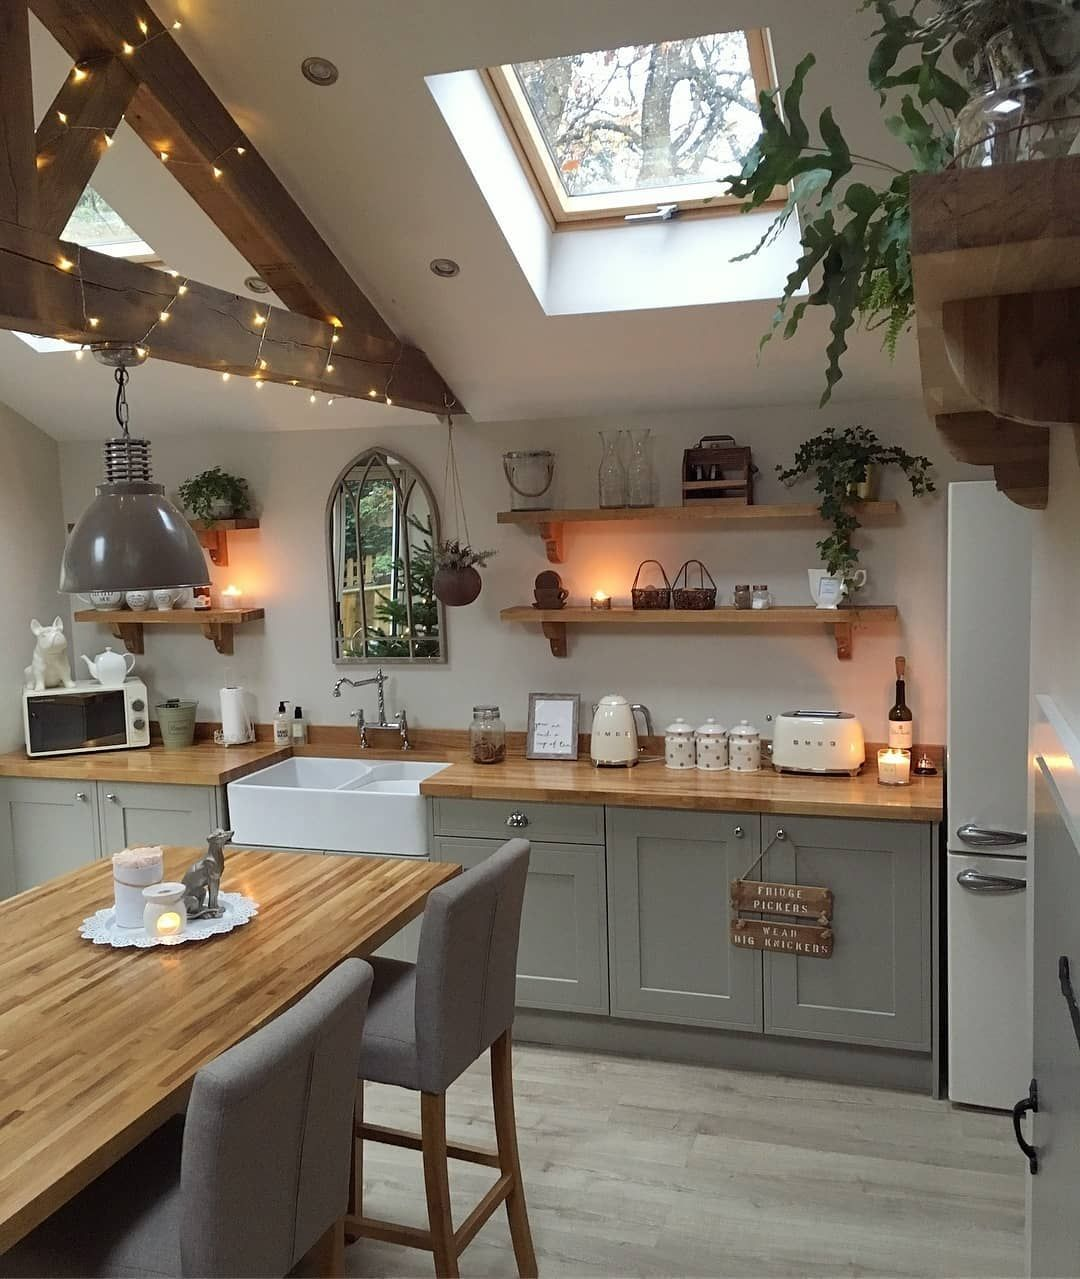 35 Great Ideas for Decorating a Kitchen 2019 - Page 6 of 37 - My Blog